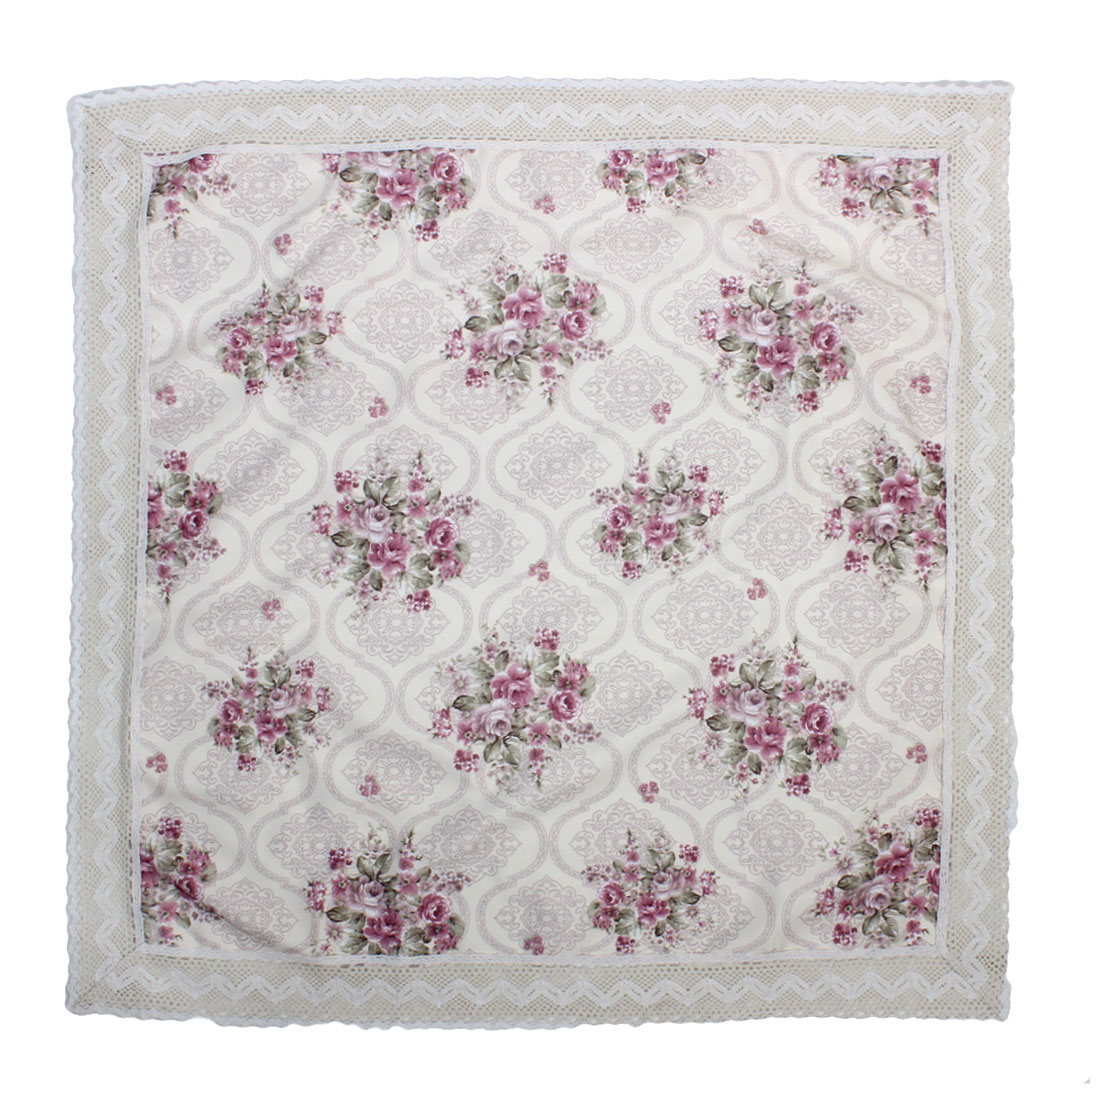 Wedding Party Decor Flower Pattern Square Shaped Crochet Tablecloth 80 x 80cm